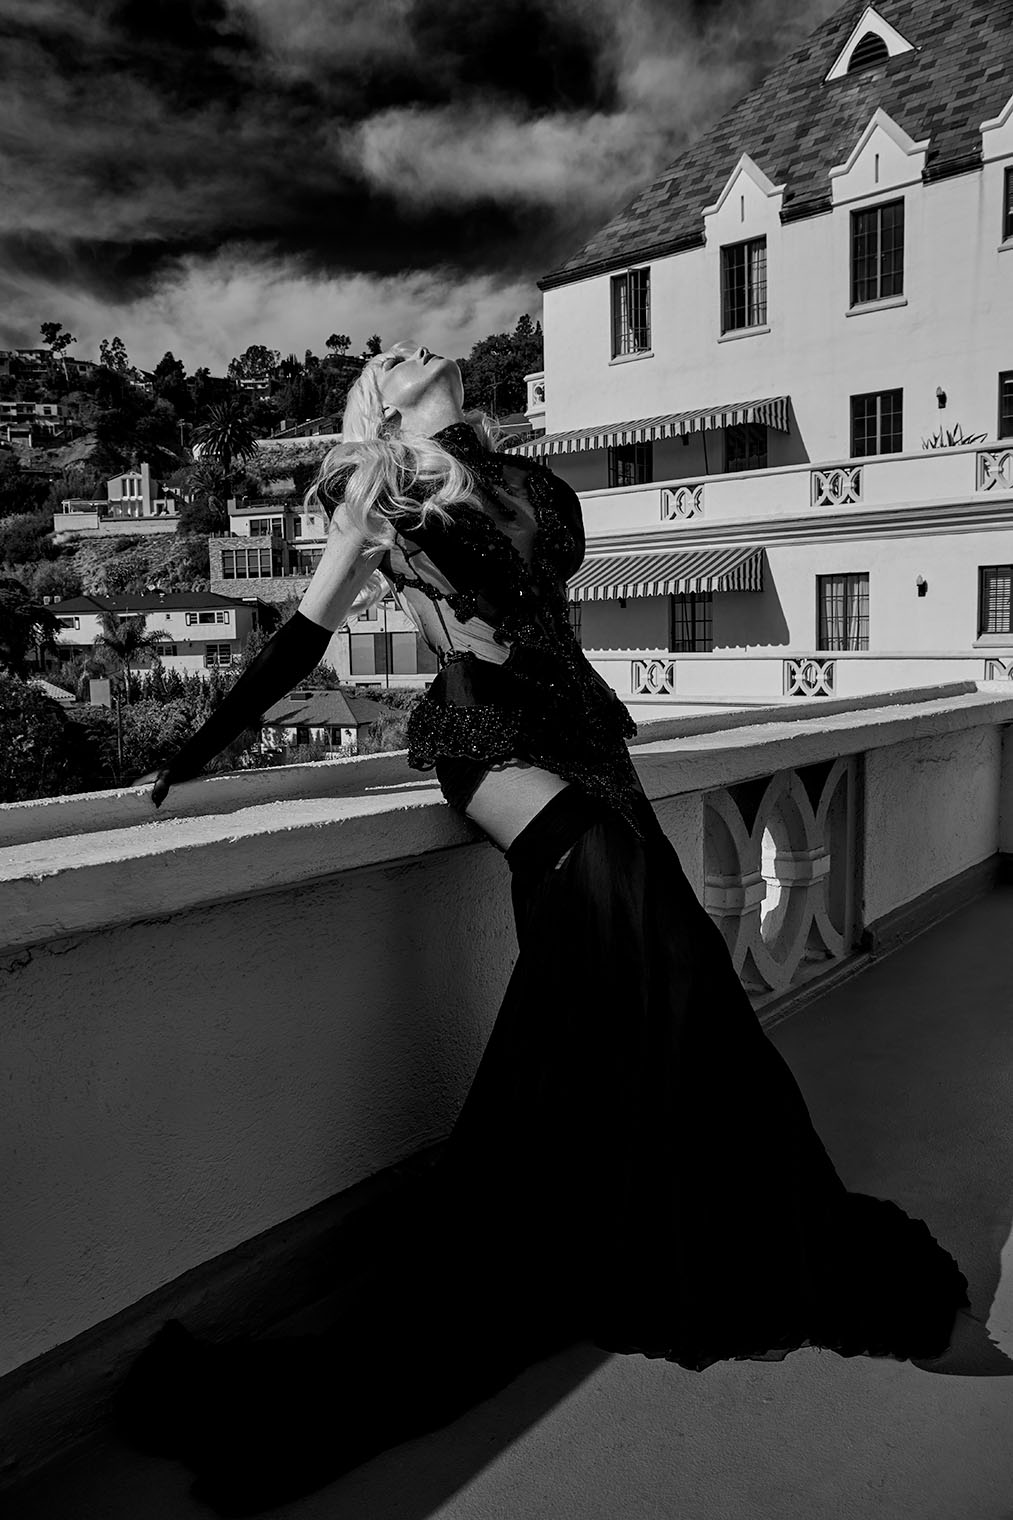 High fashion gown in black worn by actress at Hollywood Chateau Marmont fashion editorial photography shoot